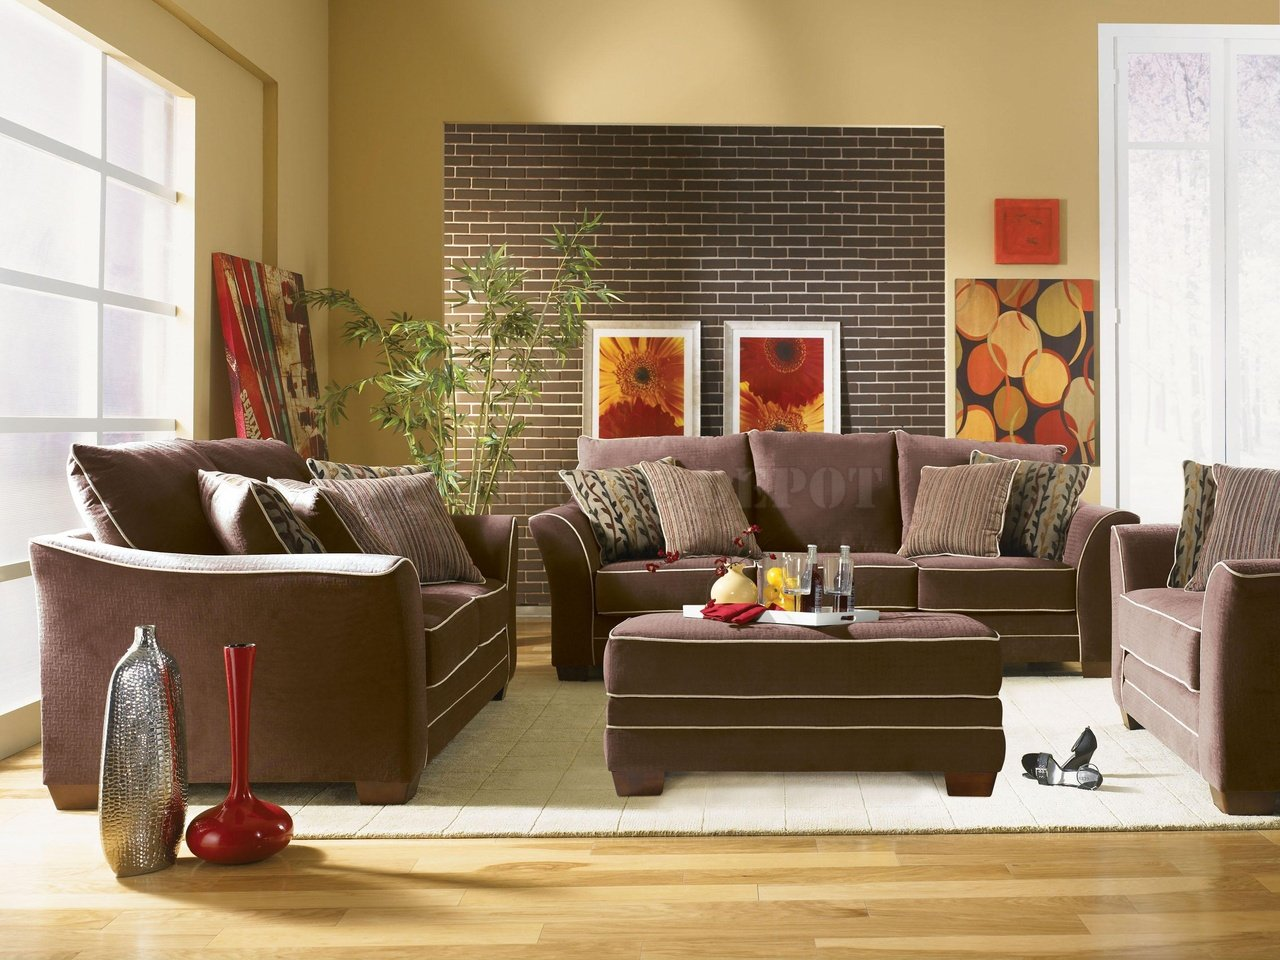 Interior design ideas interior designs home design ideas for Living room sofa